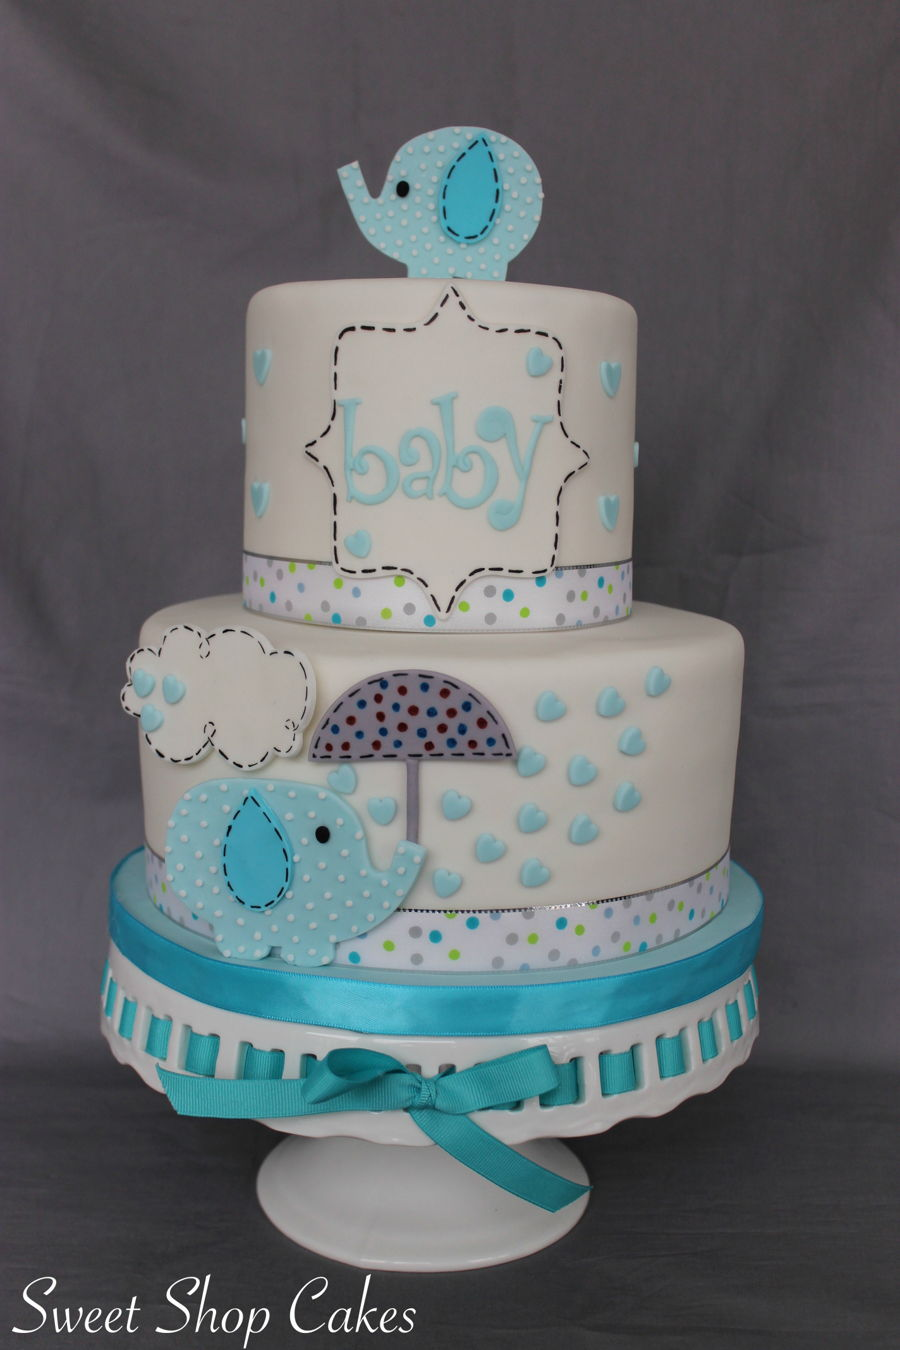 Baby Elephant Cake Decoration : Elephant Baby Shower Cake - CakeCentral.com